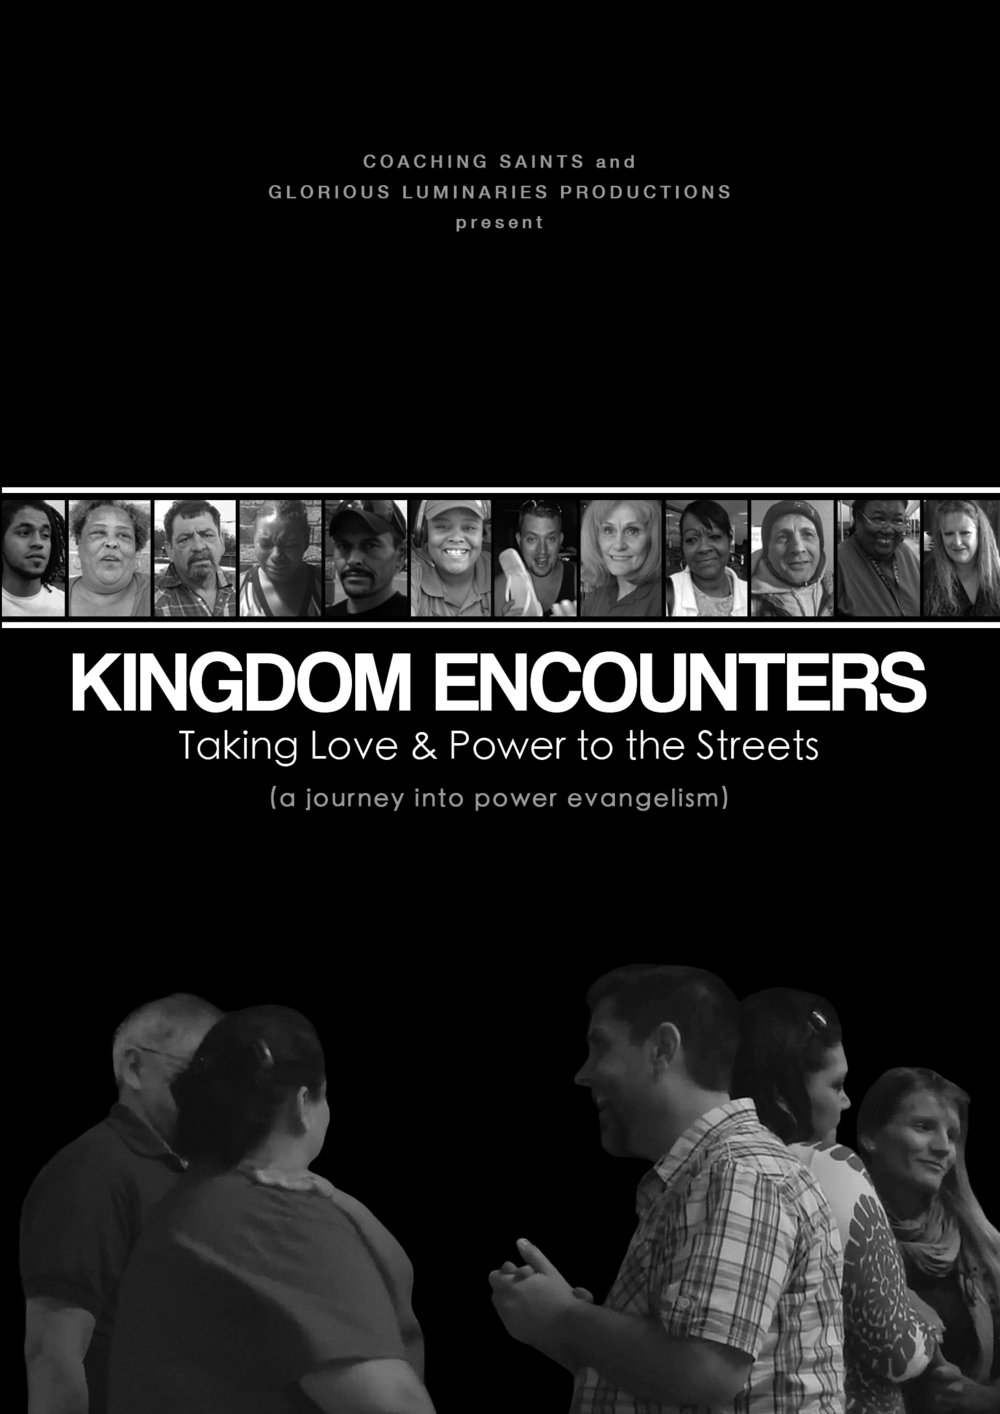 To purchase a digital download or rental of Kingdom Encounters, go to our Vimeo page. To purchase DVDs of Kingdom Encounters or other products, go to coachingsaints.com.